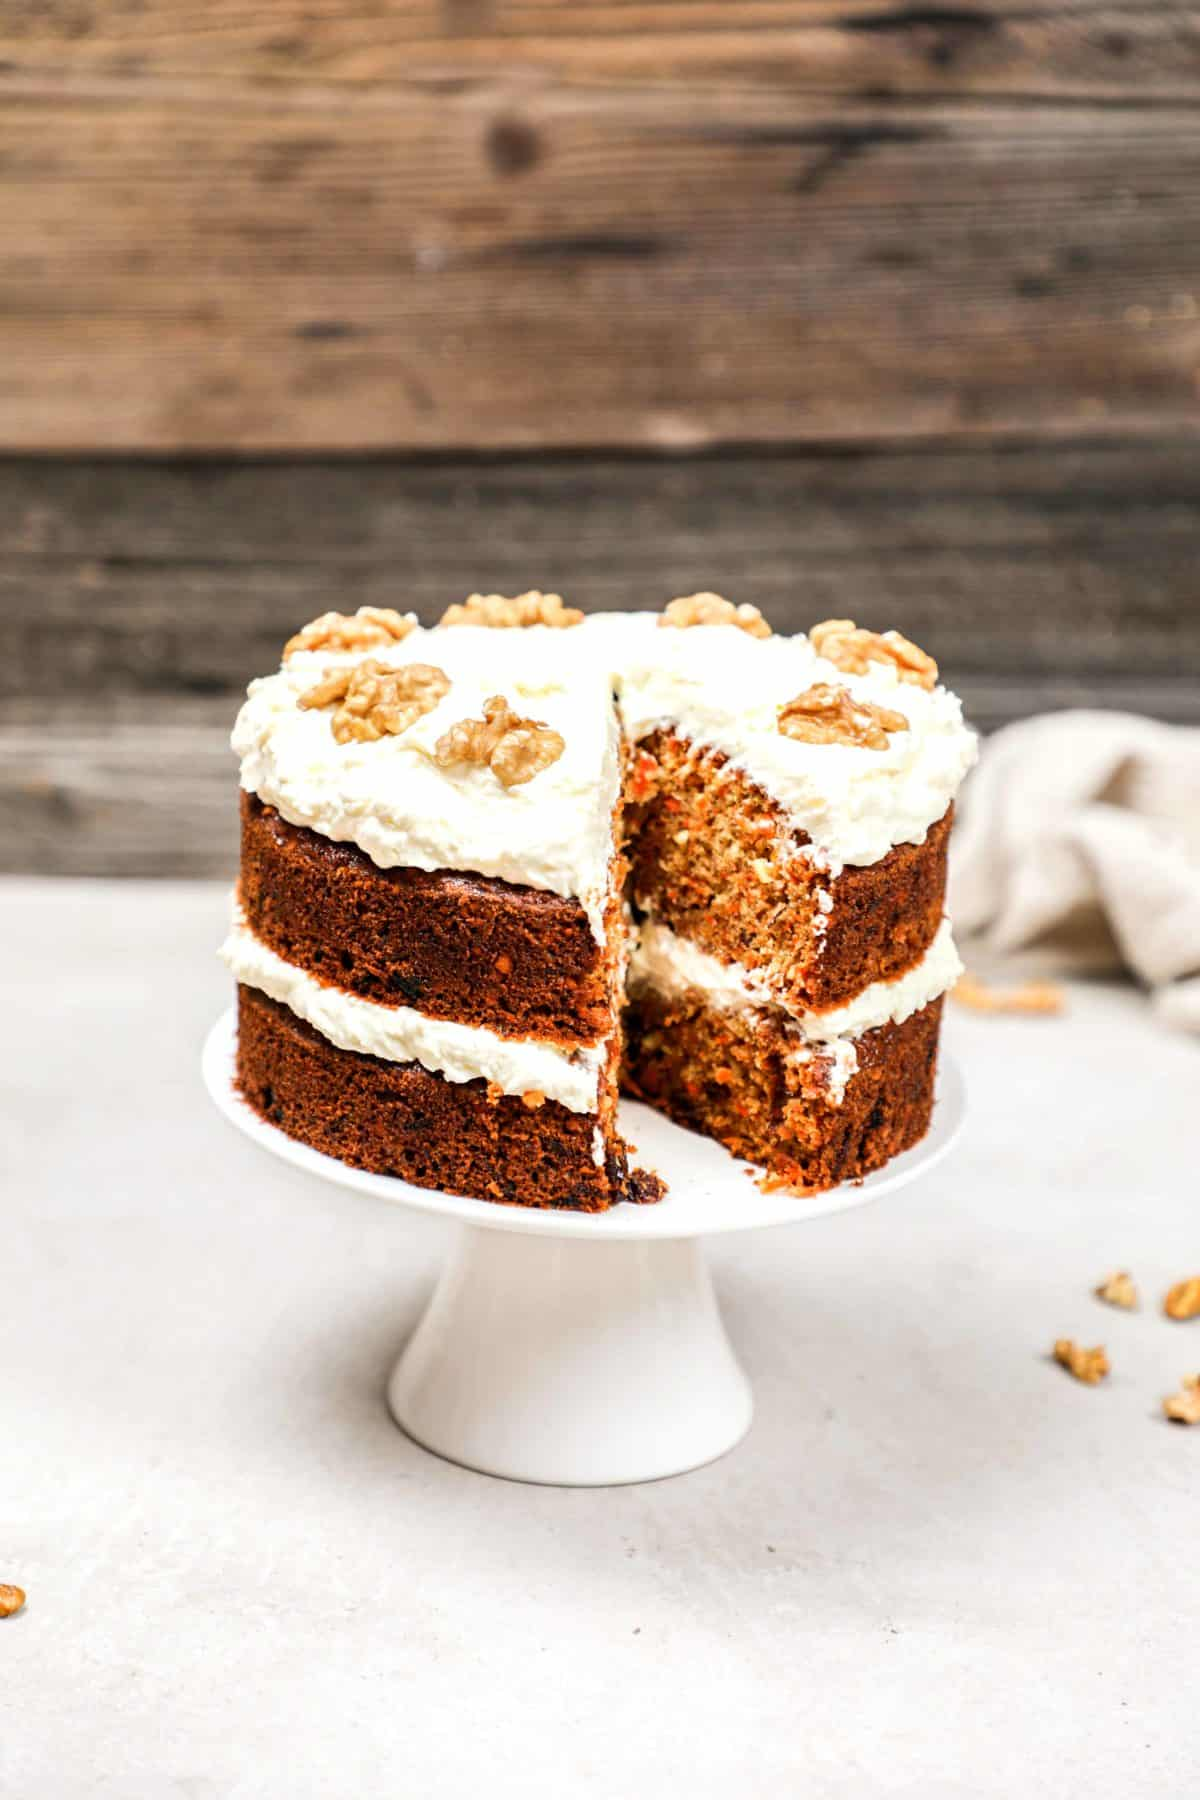 A carrot cake on a cake stand with a slice cut out of it.